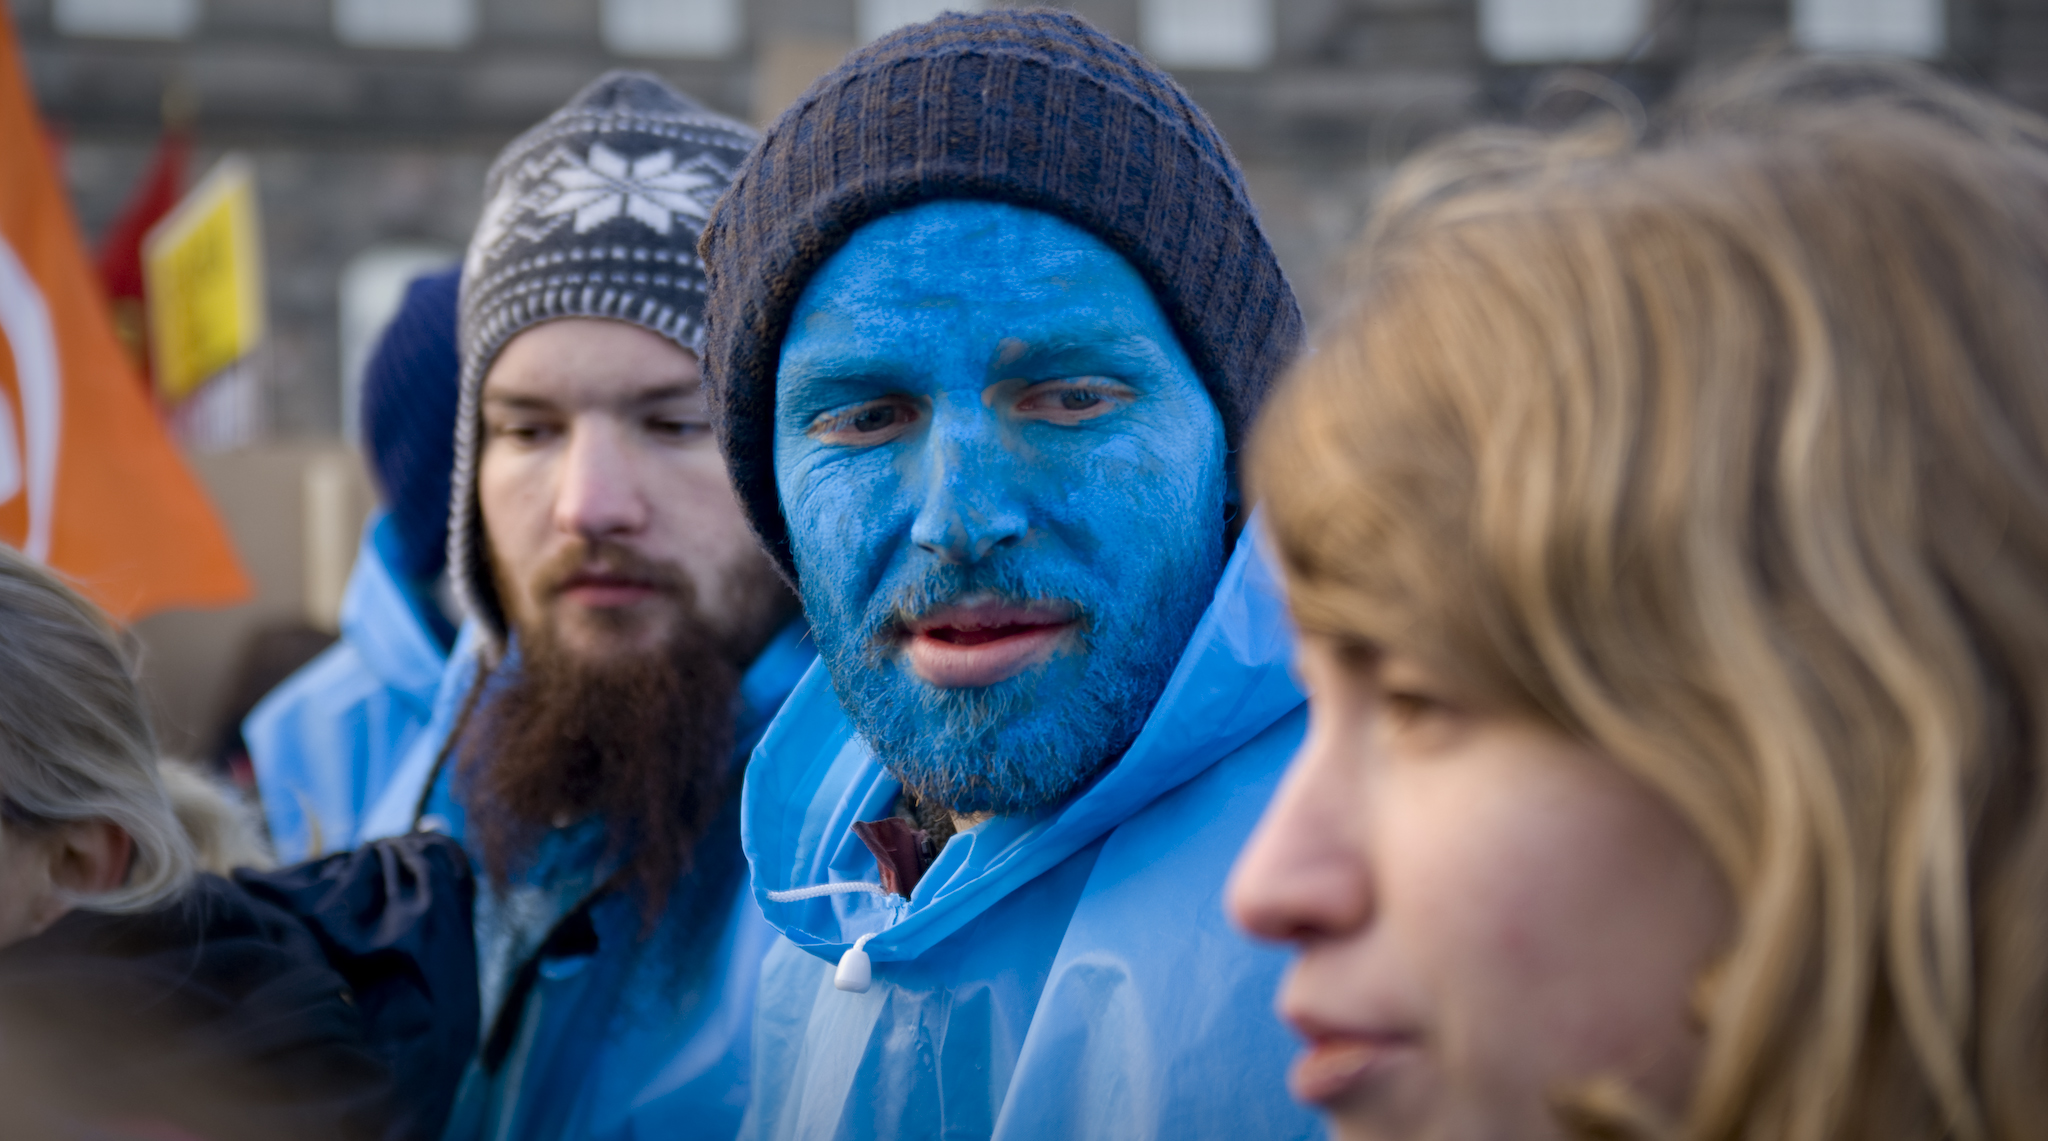 blue man cop15 demonstration